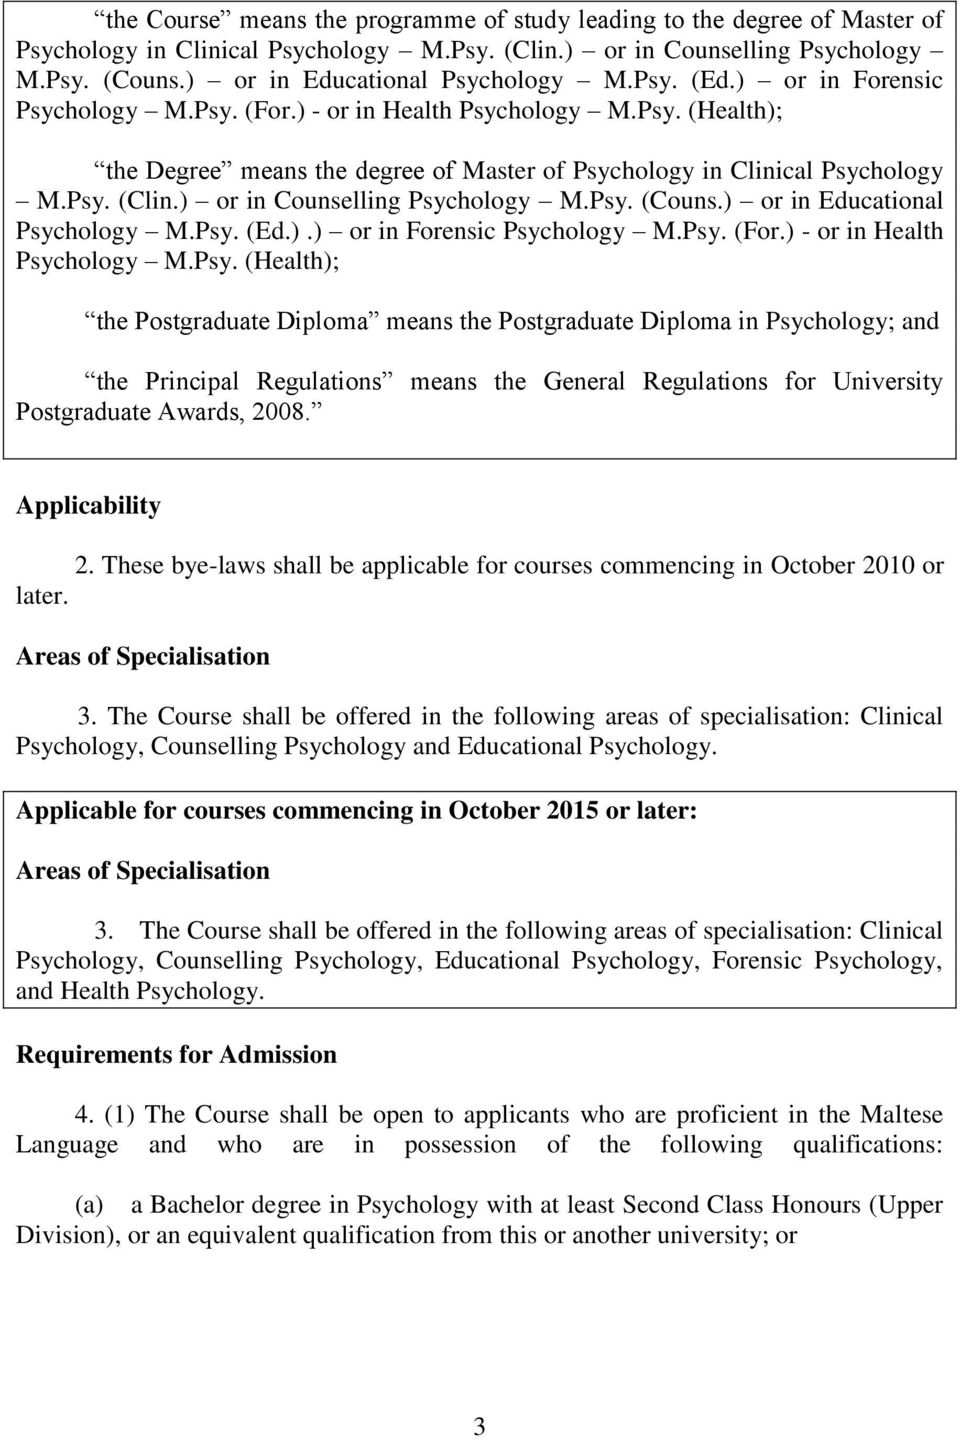 ) or in Counselling Psyc